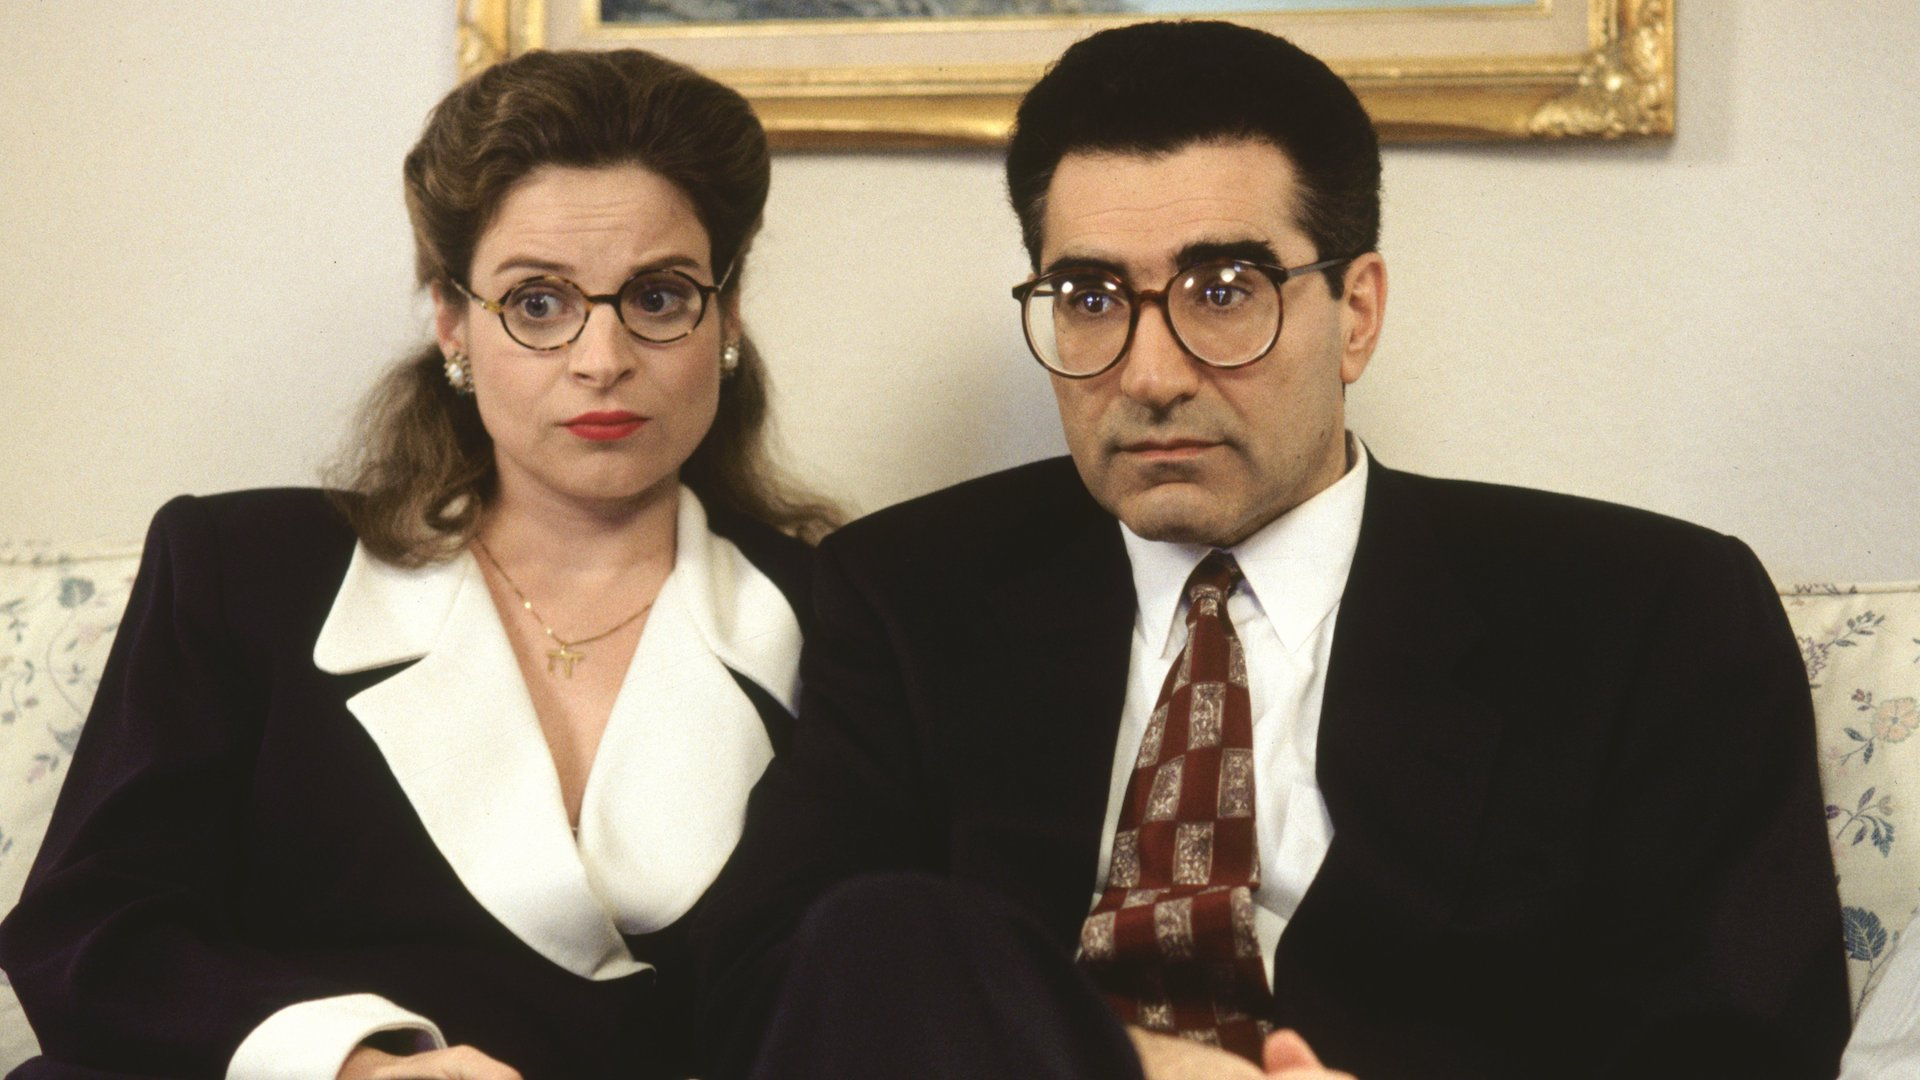 Linda Kash (left) and Eugene Levy (right) in Waiting for Guffman (1996).